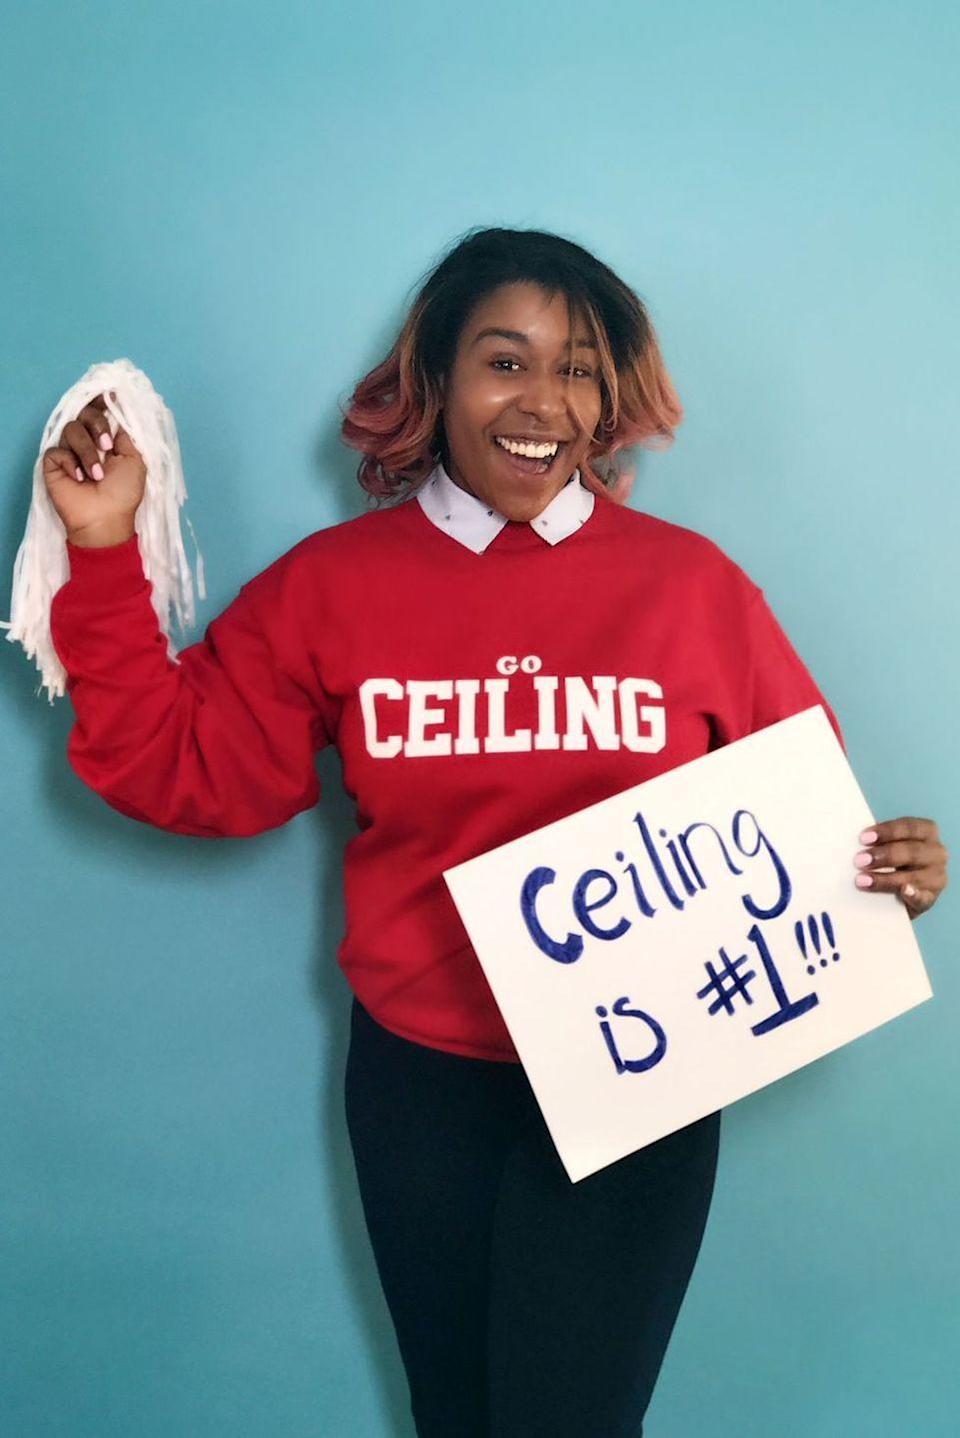 """<p>Another pun costume that'll steal the show: Add some school — er, ceiling — cheer with this sweatshirt and poster combo. Don't forget the pom poms!</p><p><a class=""""link rapid-noclick-resp"""" href=""""https://www.amazon.com/dp/B00524U8UQ/ref=twister_B07H8N816F?_encoding=UTF8&psc=1&tag=syn-yahoo-20&ascsubtag=%5Bartid%7C10055.g.2750%5Bsrc%7Cyahoo-us"""" rel=""""nofollow noopener"""" target=""""_blank"""" data-ylk=""""slk:SHOP POM POMS"""">SHOP POM POMS</a></p>"""